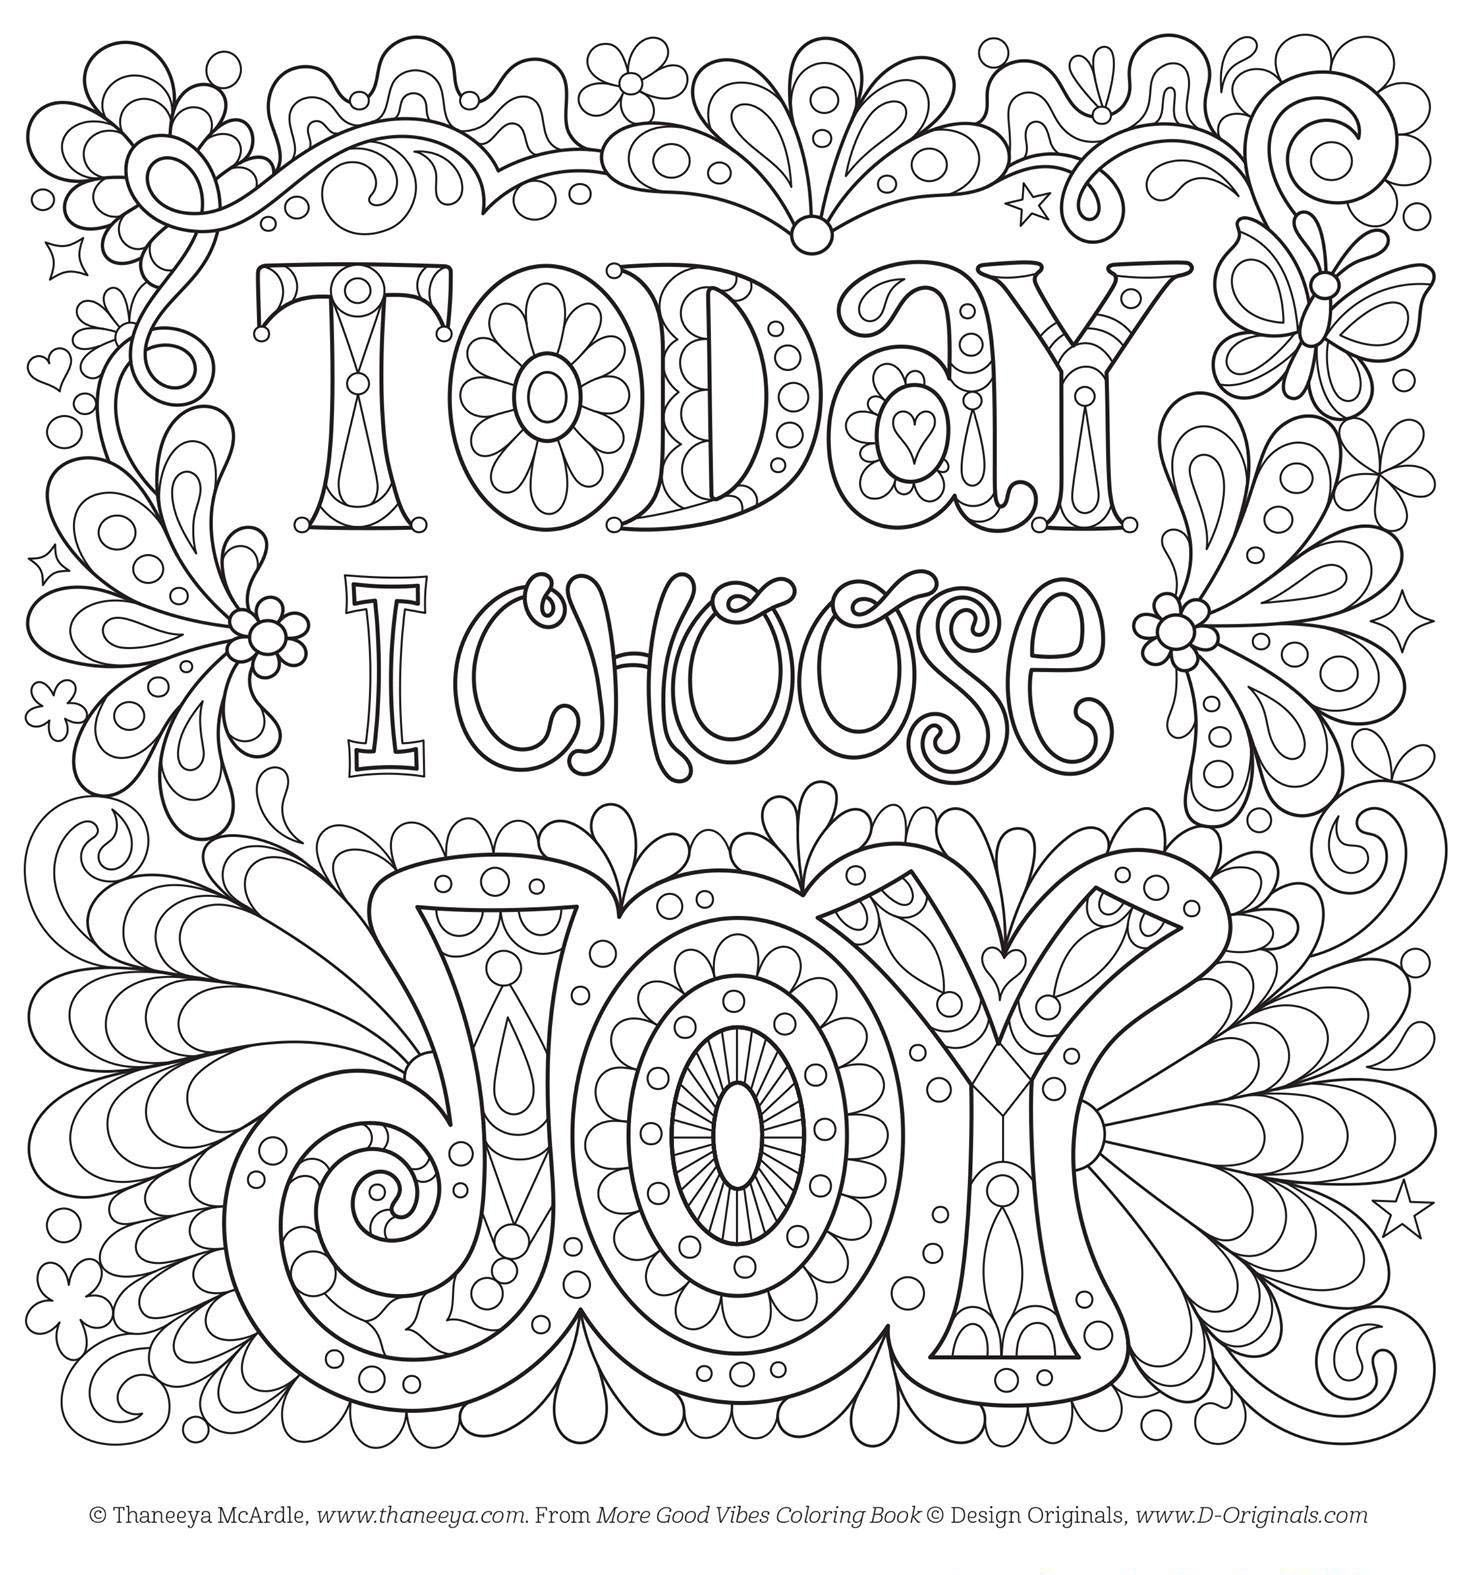 Today I Choose Joy Free Coloring Page By Thaneeya